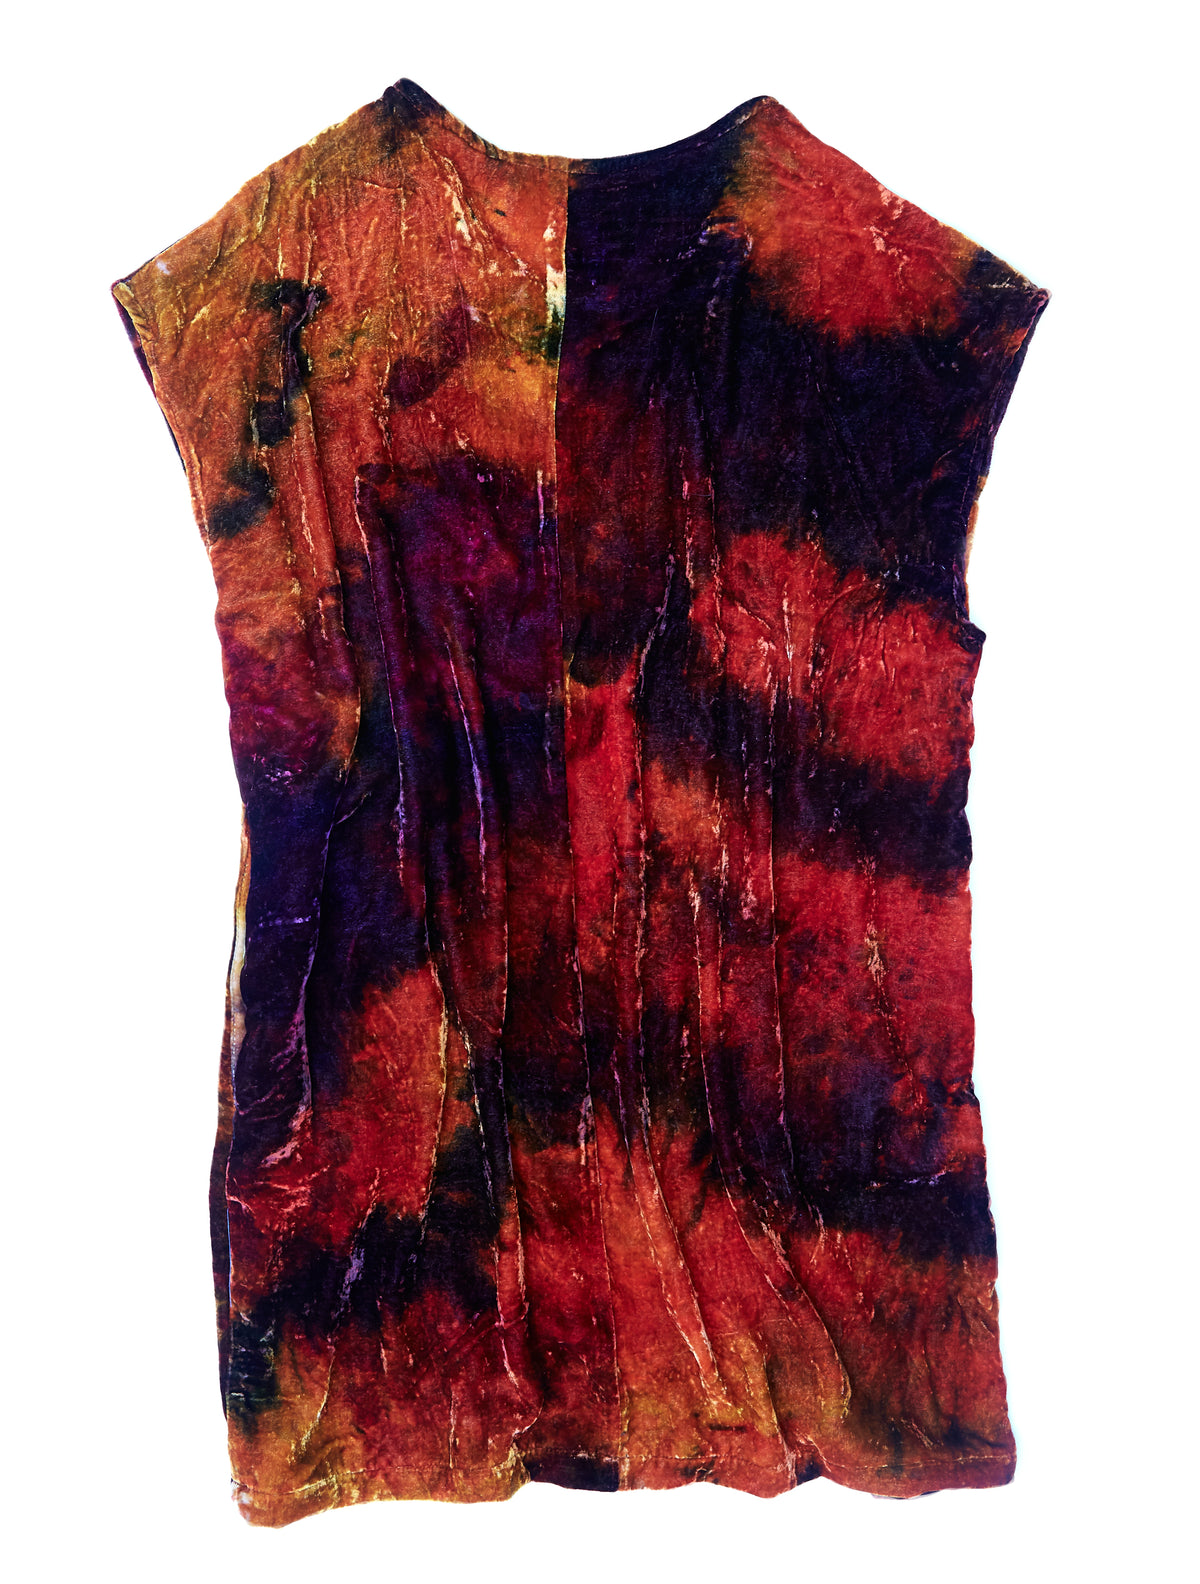 Box Dress in Hendrix Silk Velvet - riverside tool & dye